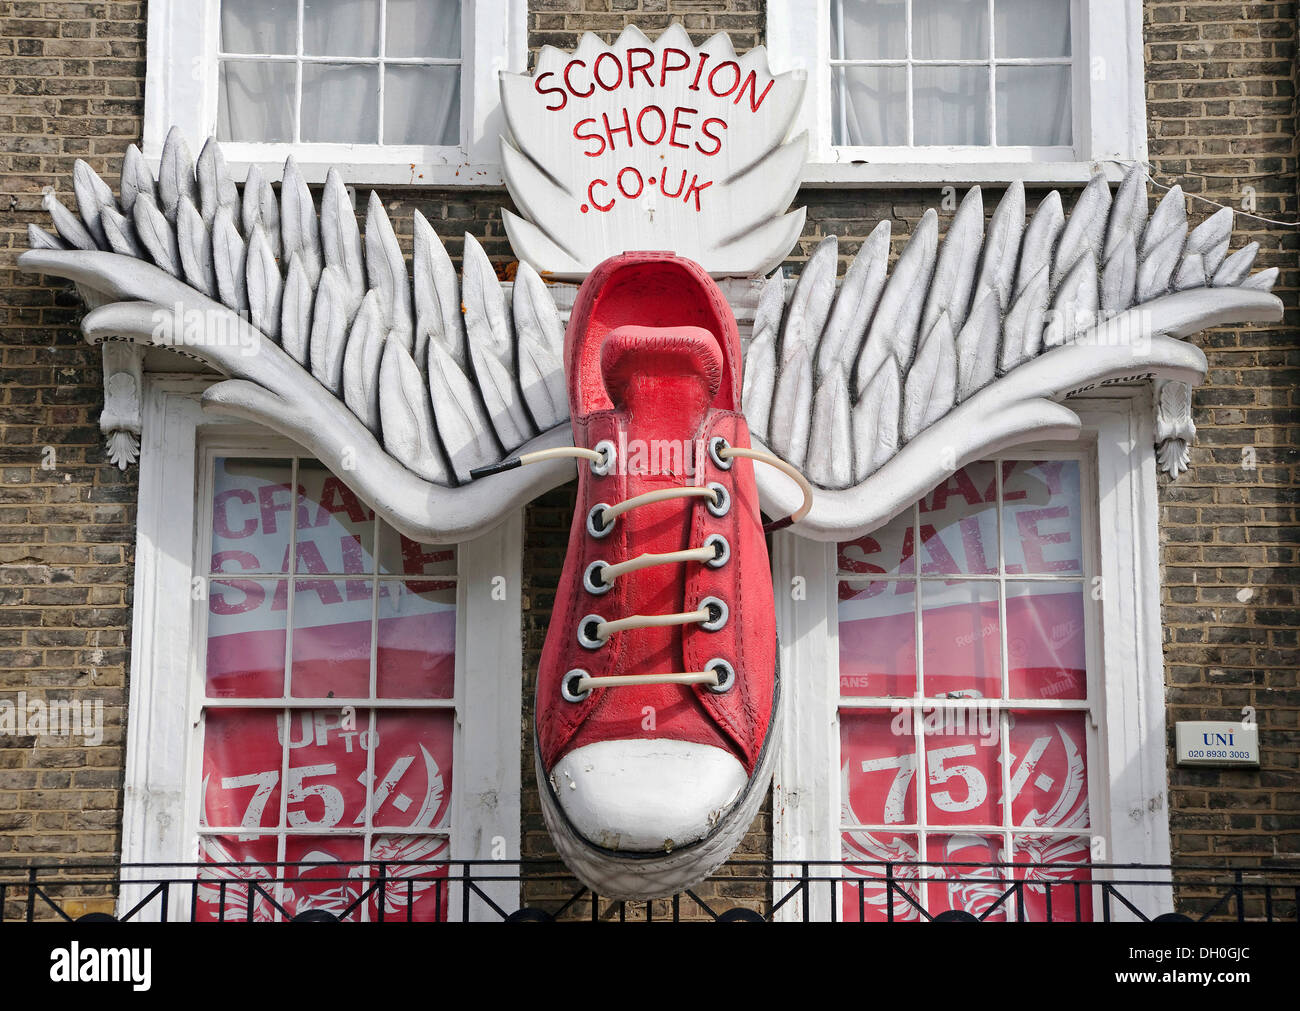 scorpion shoes, larger than life, red trainer shoe's, with wings, attached, to the side of shop front, building, - Stock Image